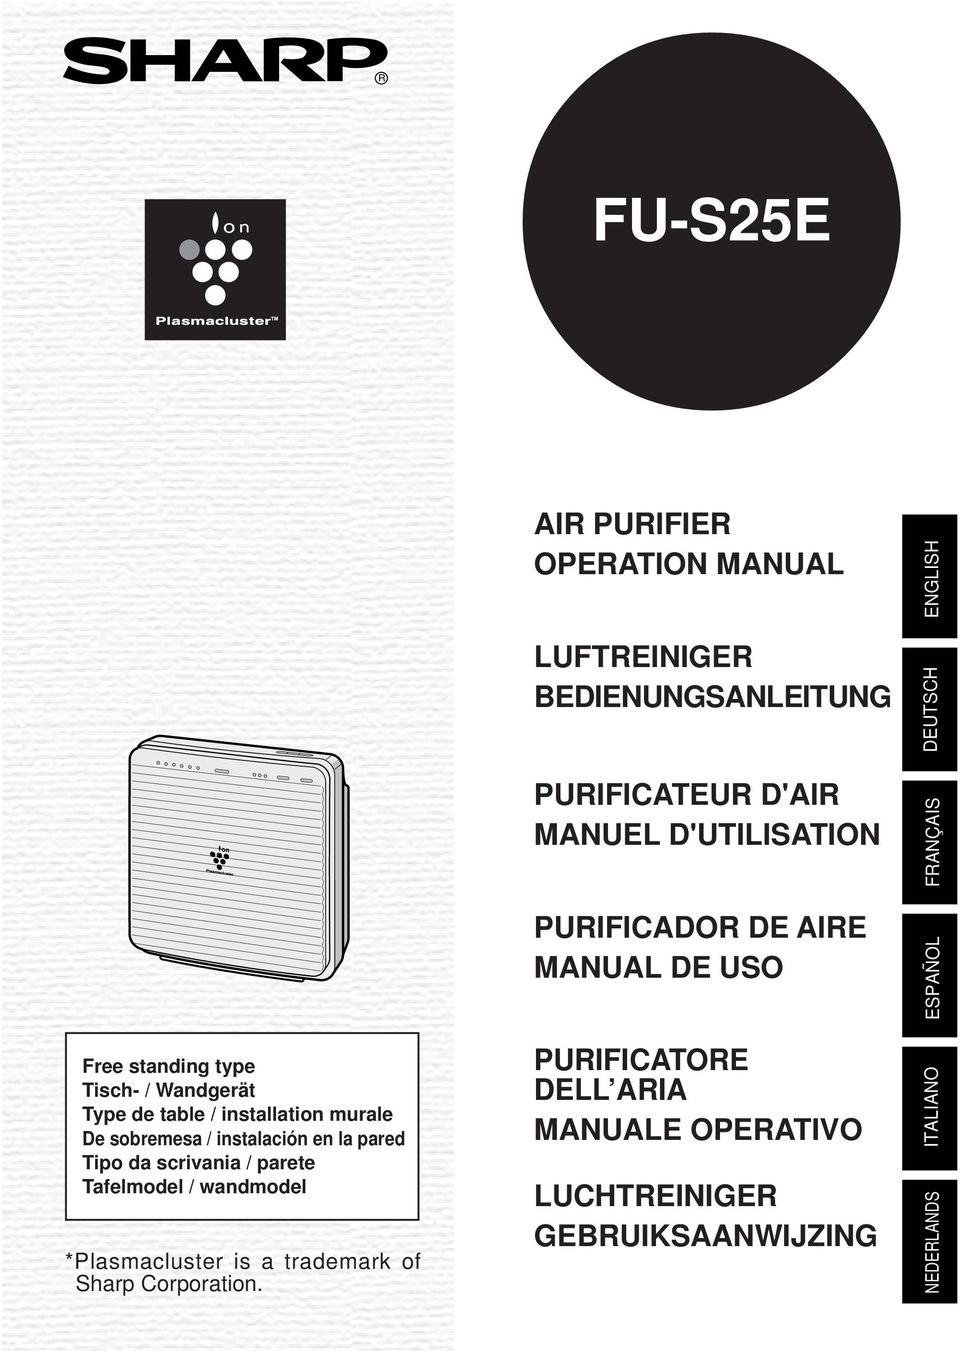 AIR PURIFIER OPERATION MANUAL LUFTREINIGER BEDIENUNGSANLEITUNG PURIFICATEUR D'AIR MANUEL D'UTILISATION PURIFICADOR DE AIRE